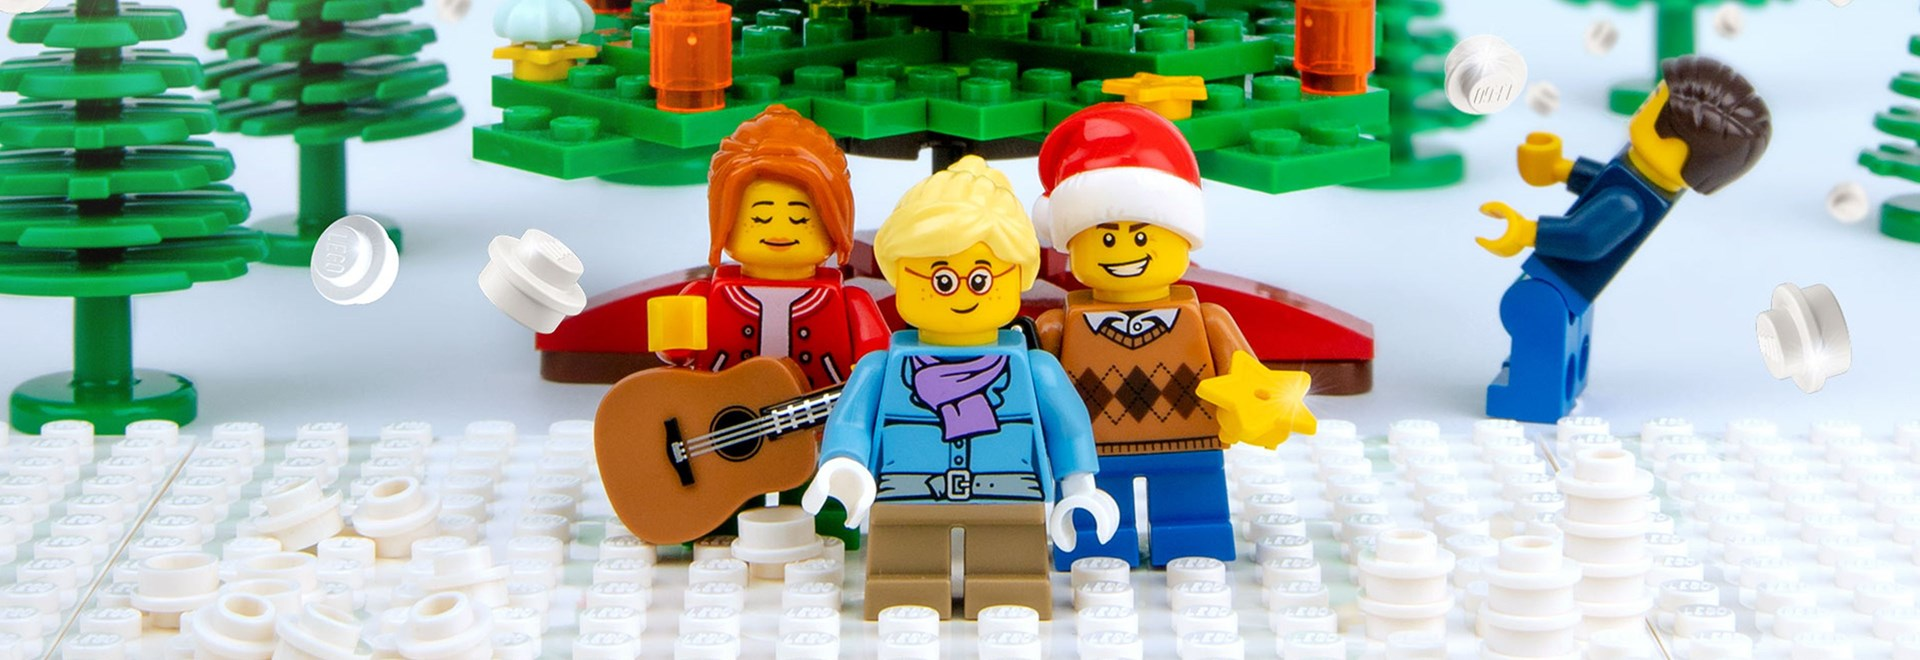 Topbanner-Christmas-in-lego-house-2